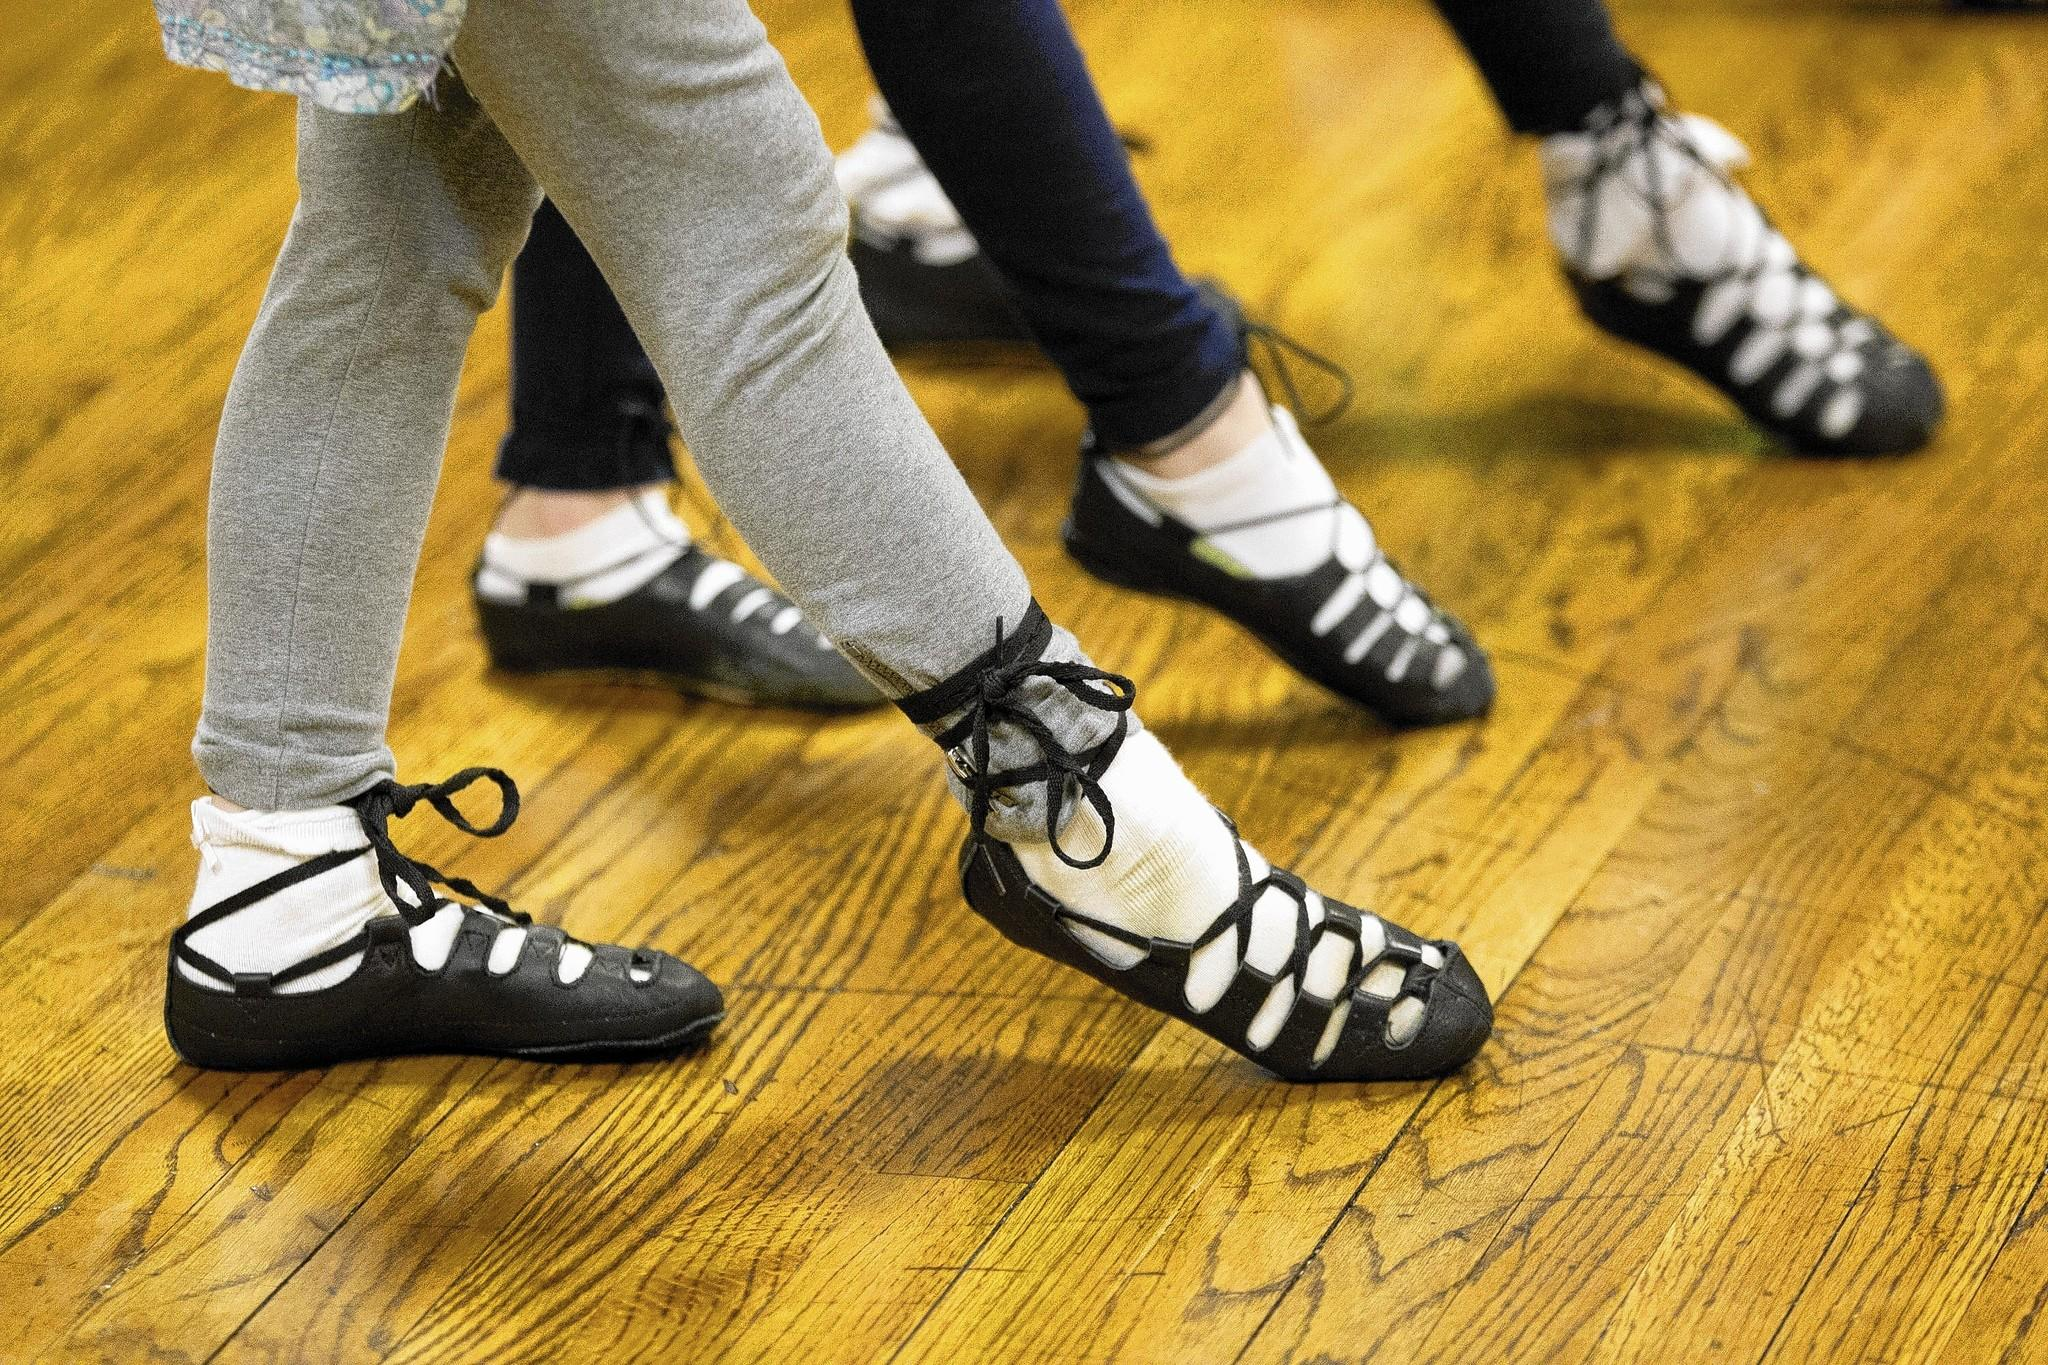 Melanie Mantler, left, 6, of Lutherville gets ready to dance during Irish dance class with The Egan School of Irish Dance at St. Pius X Catholic Church in Towson.